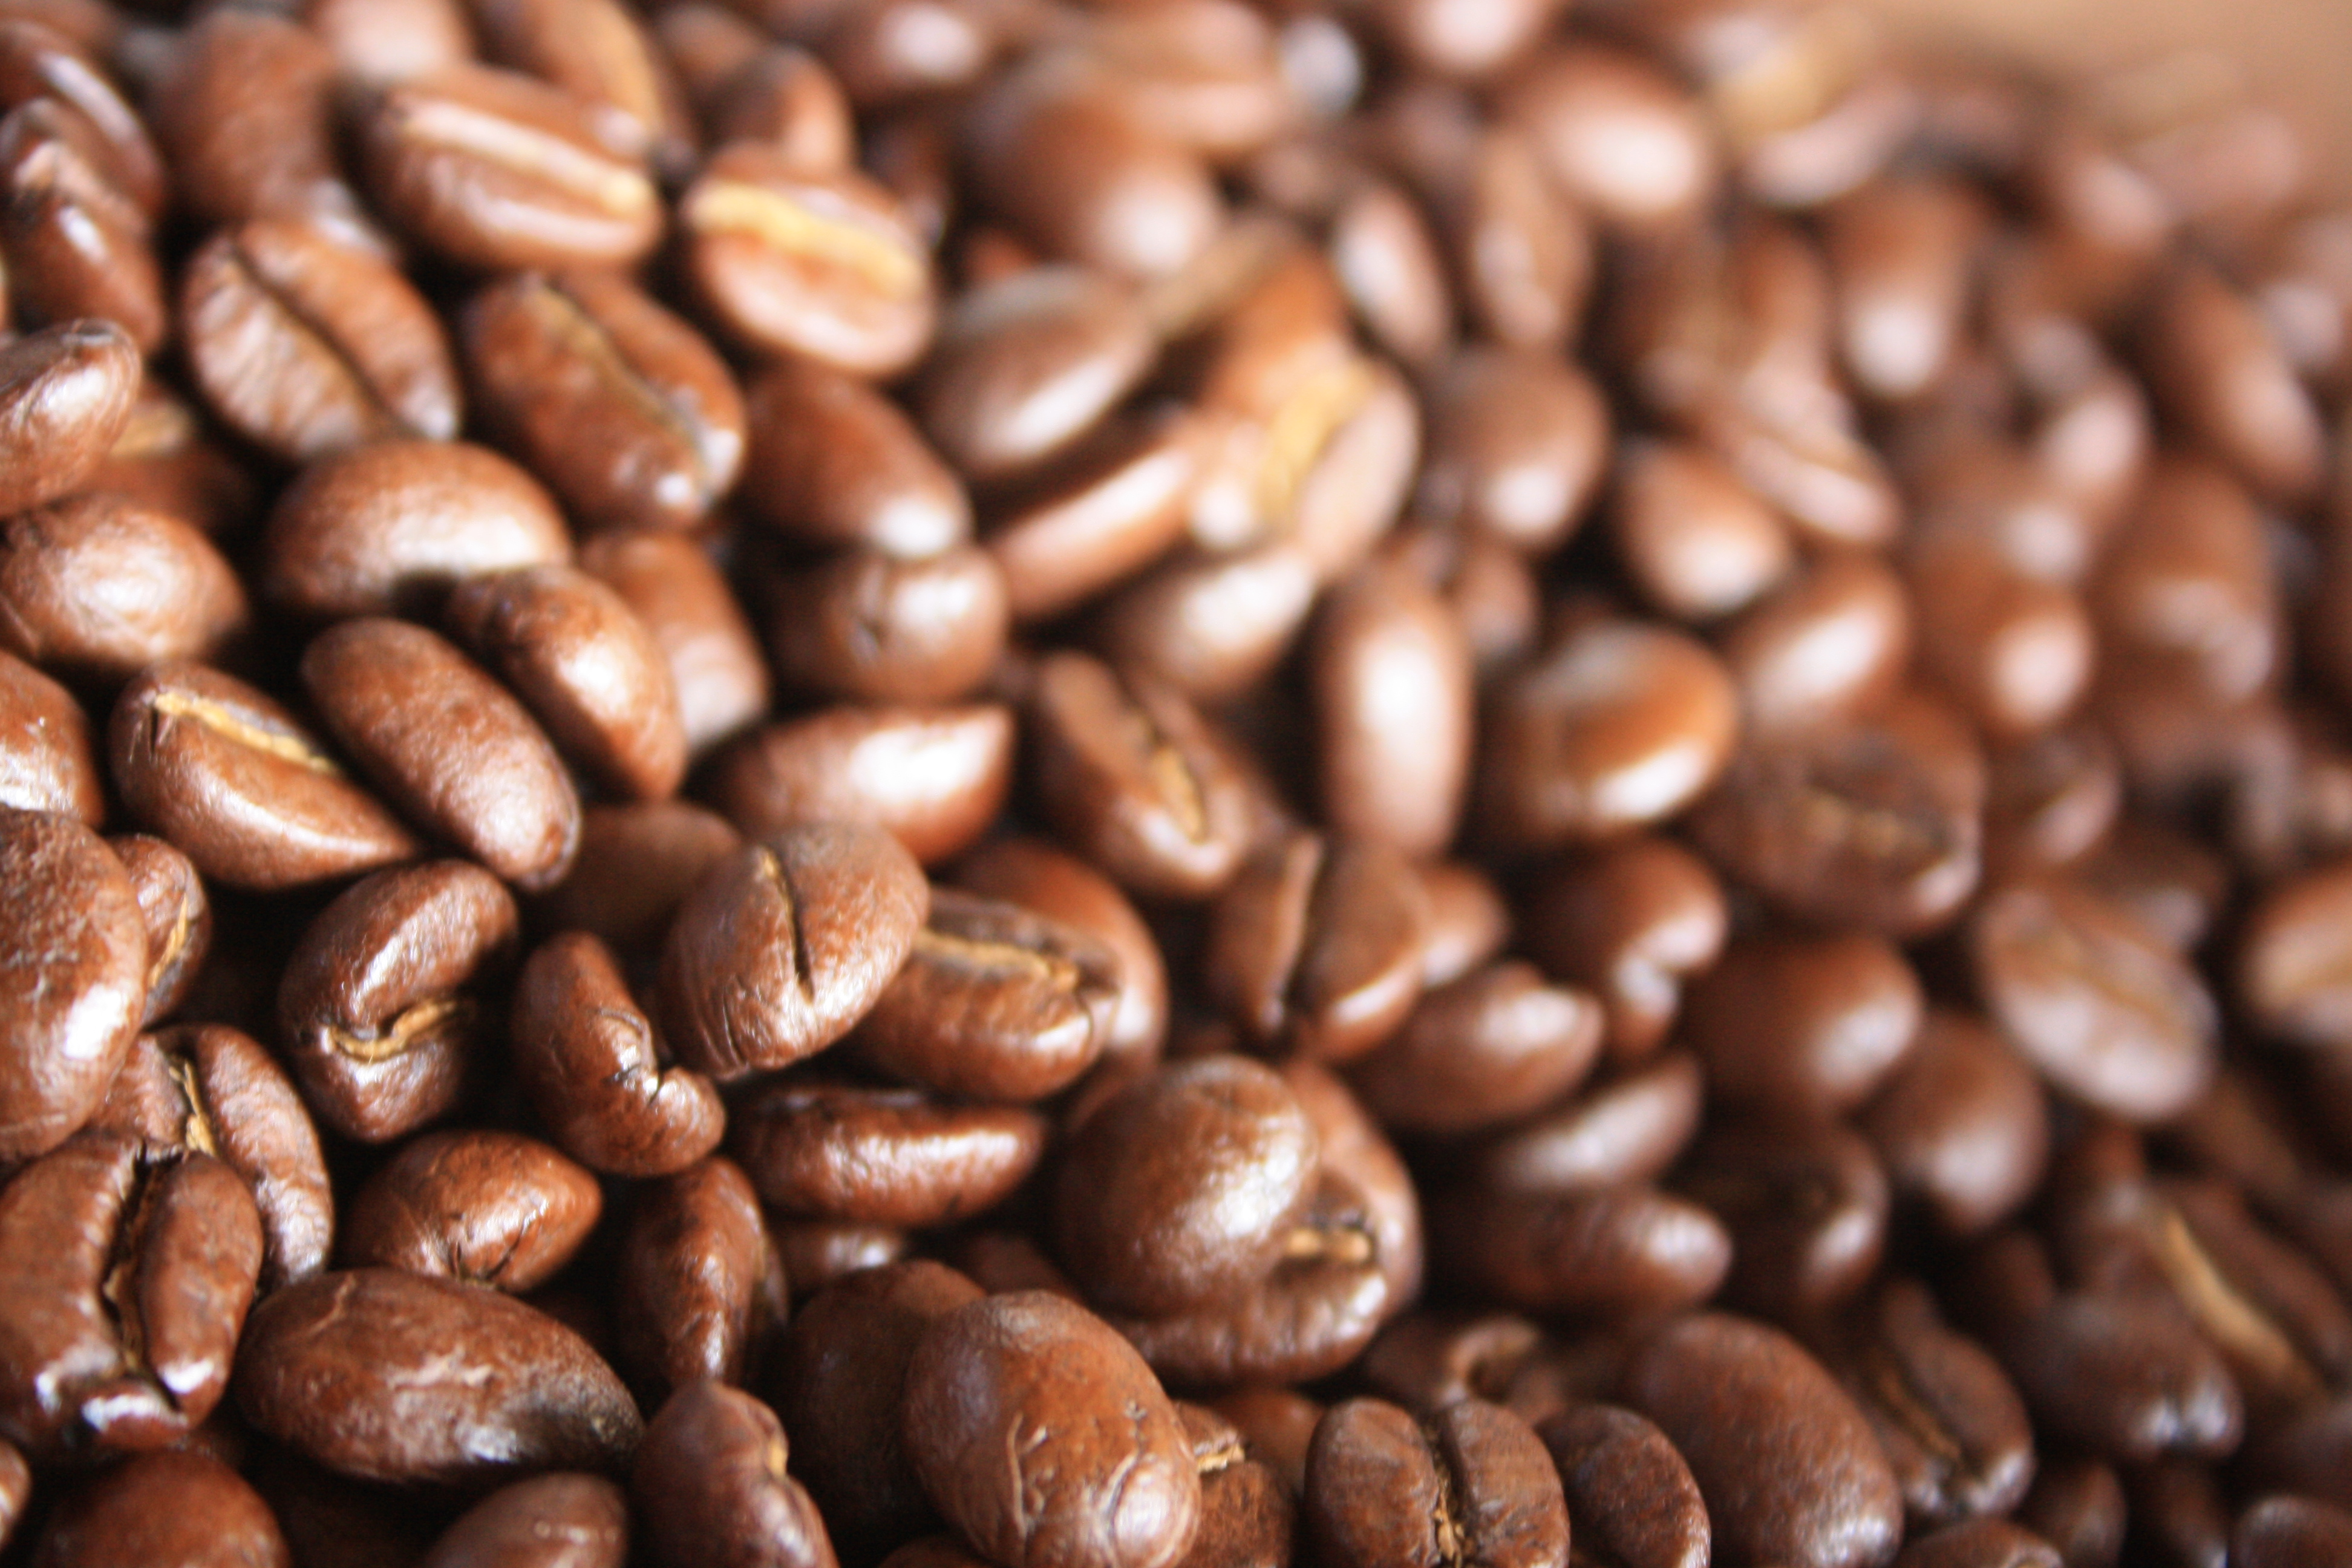 colombian coffee Shop h-e-b 100% colombian med-dark roast ground coffee - compare prices,  read reviews, add to shopping list, get product info, or find in store.